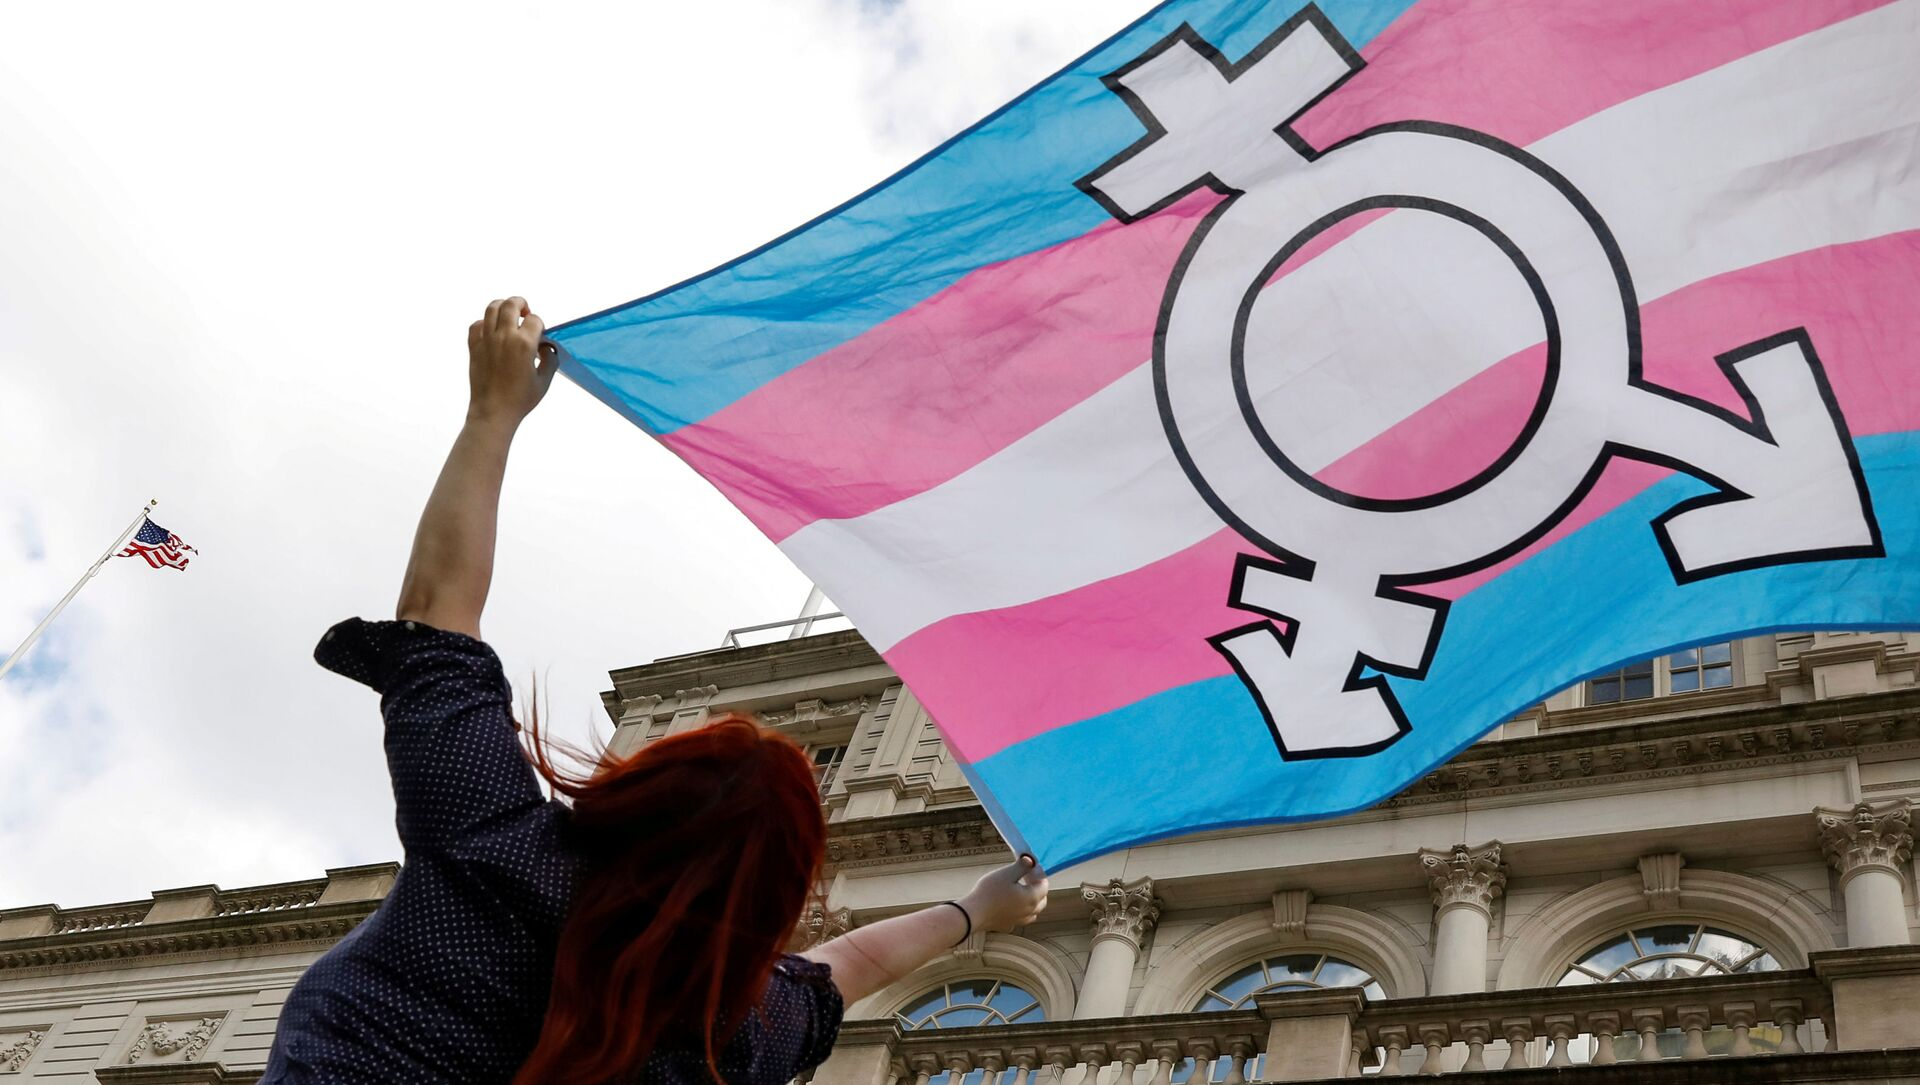 FILE PHOTO: A person holds up a flag during rally to protest the Trump administration's reported transgender proposal to narrow the definition of gender to male or female at birth, at City Hall in New York City, U.S., October 24, 2018. - Sputnik International, 1920, 24.07.2021